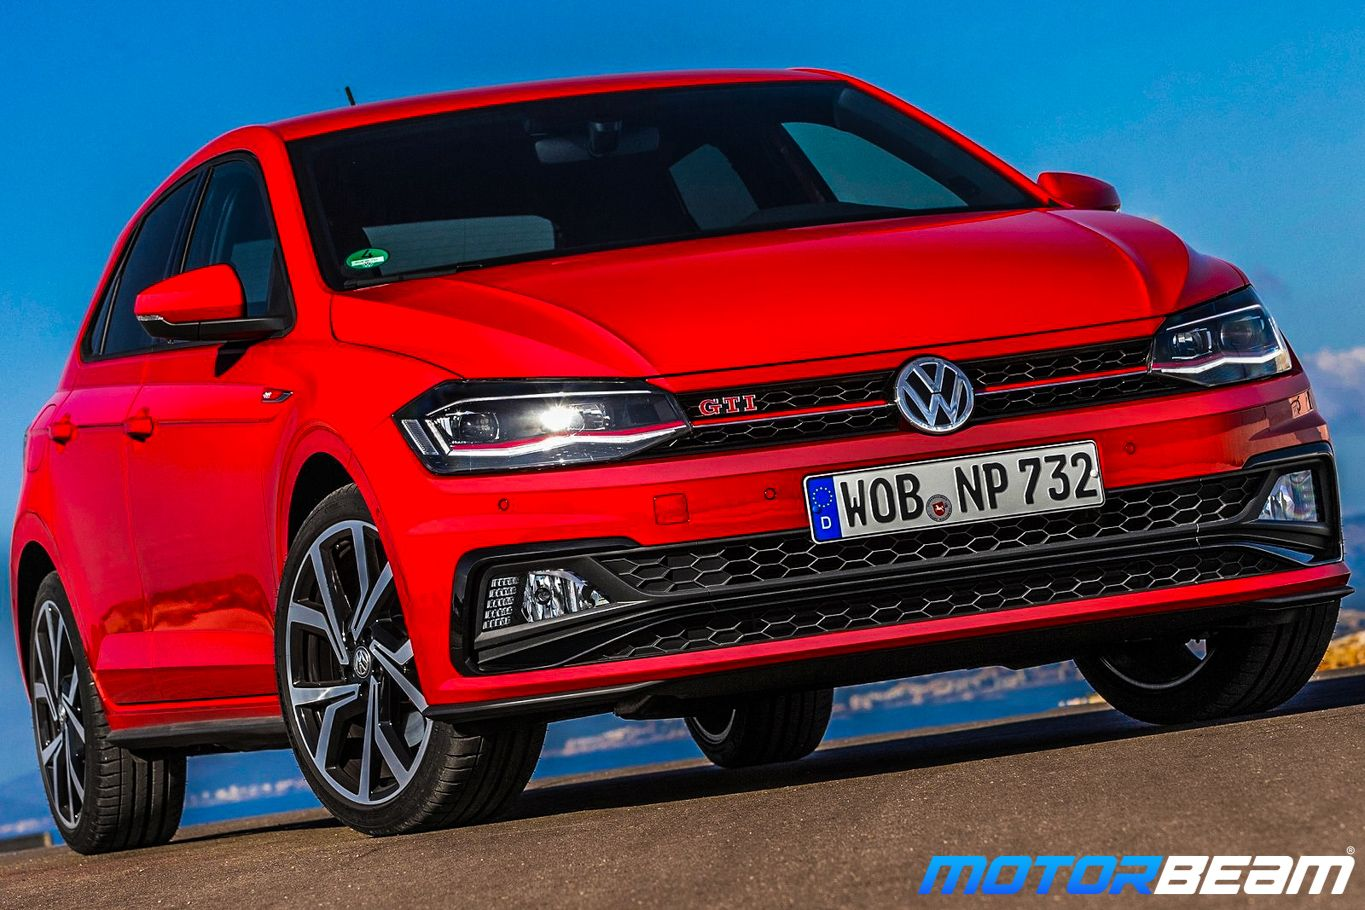 2020 Vw Polo Hybrid Price Review And Colors